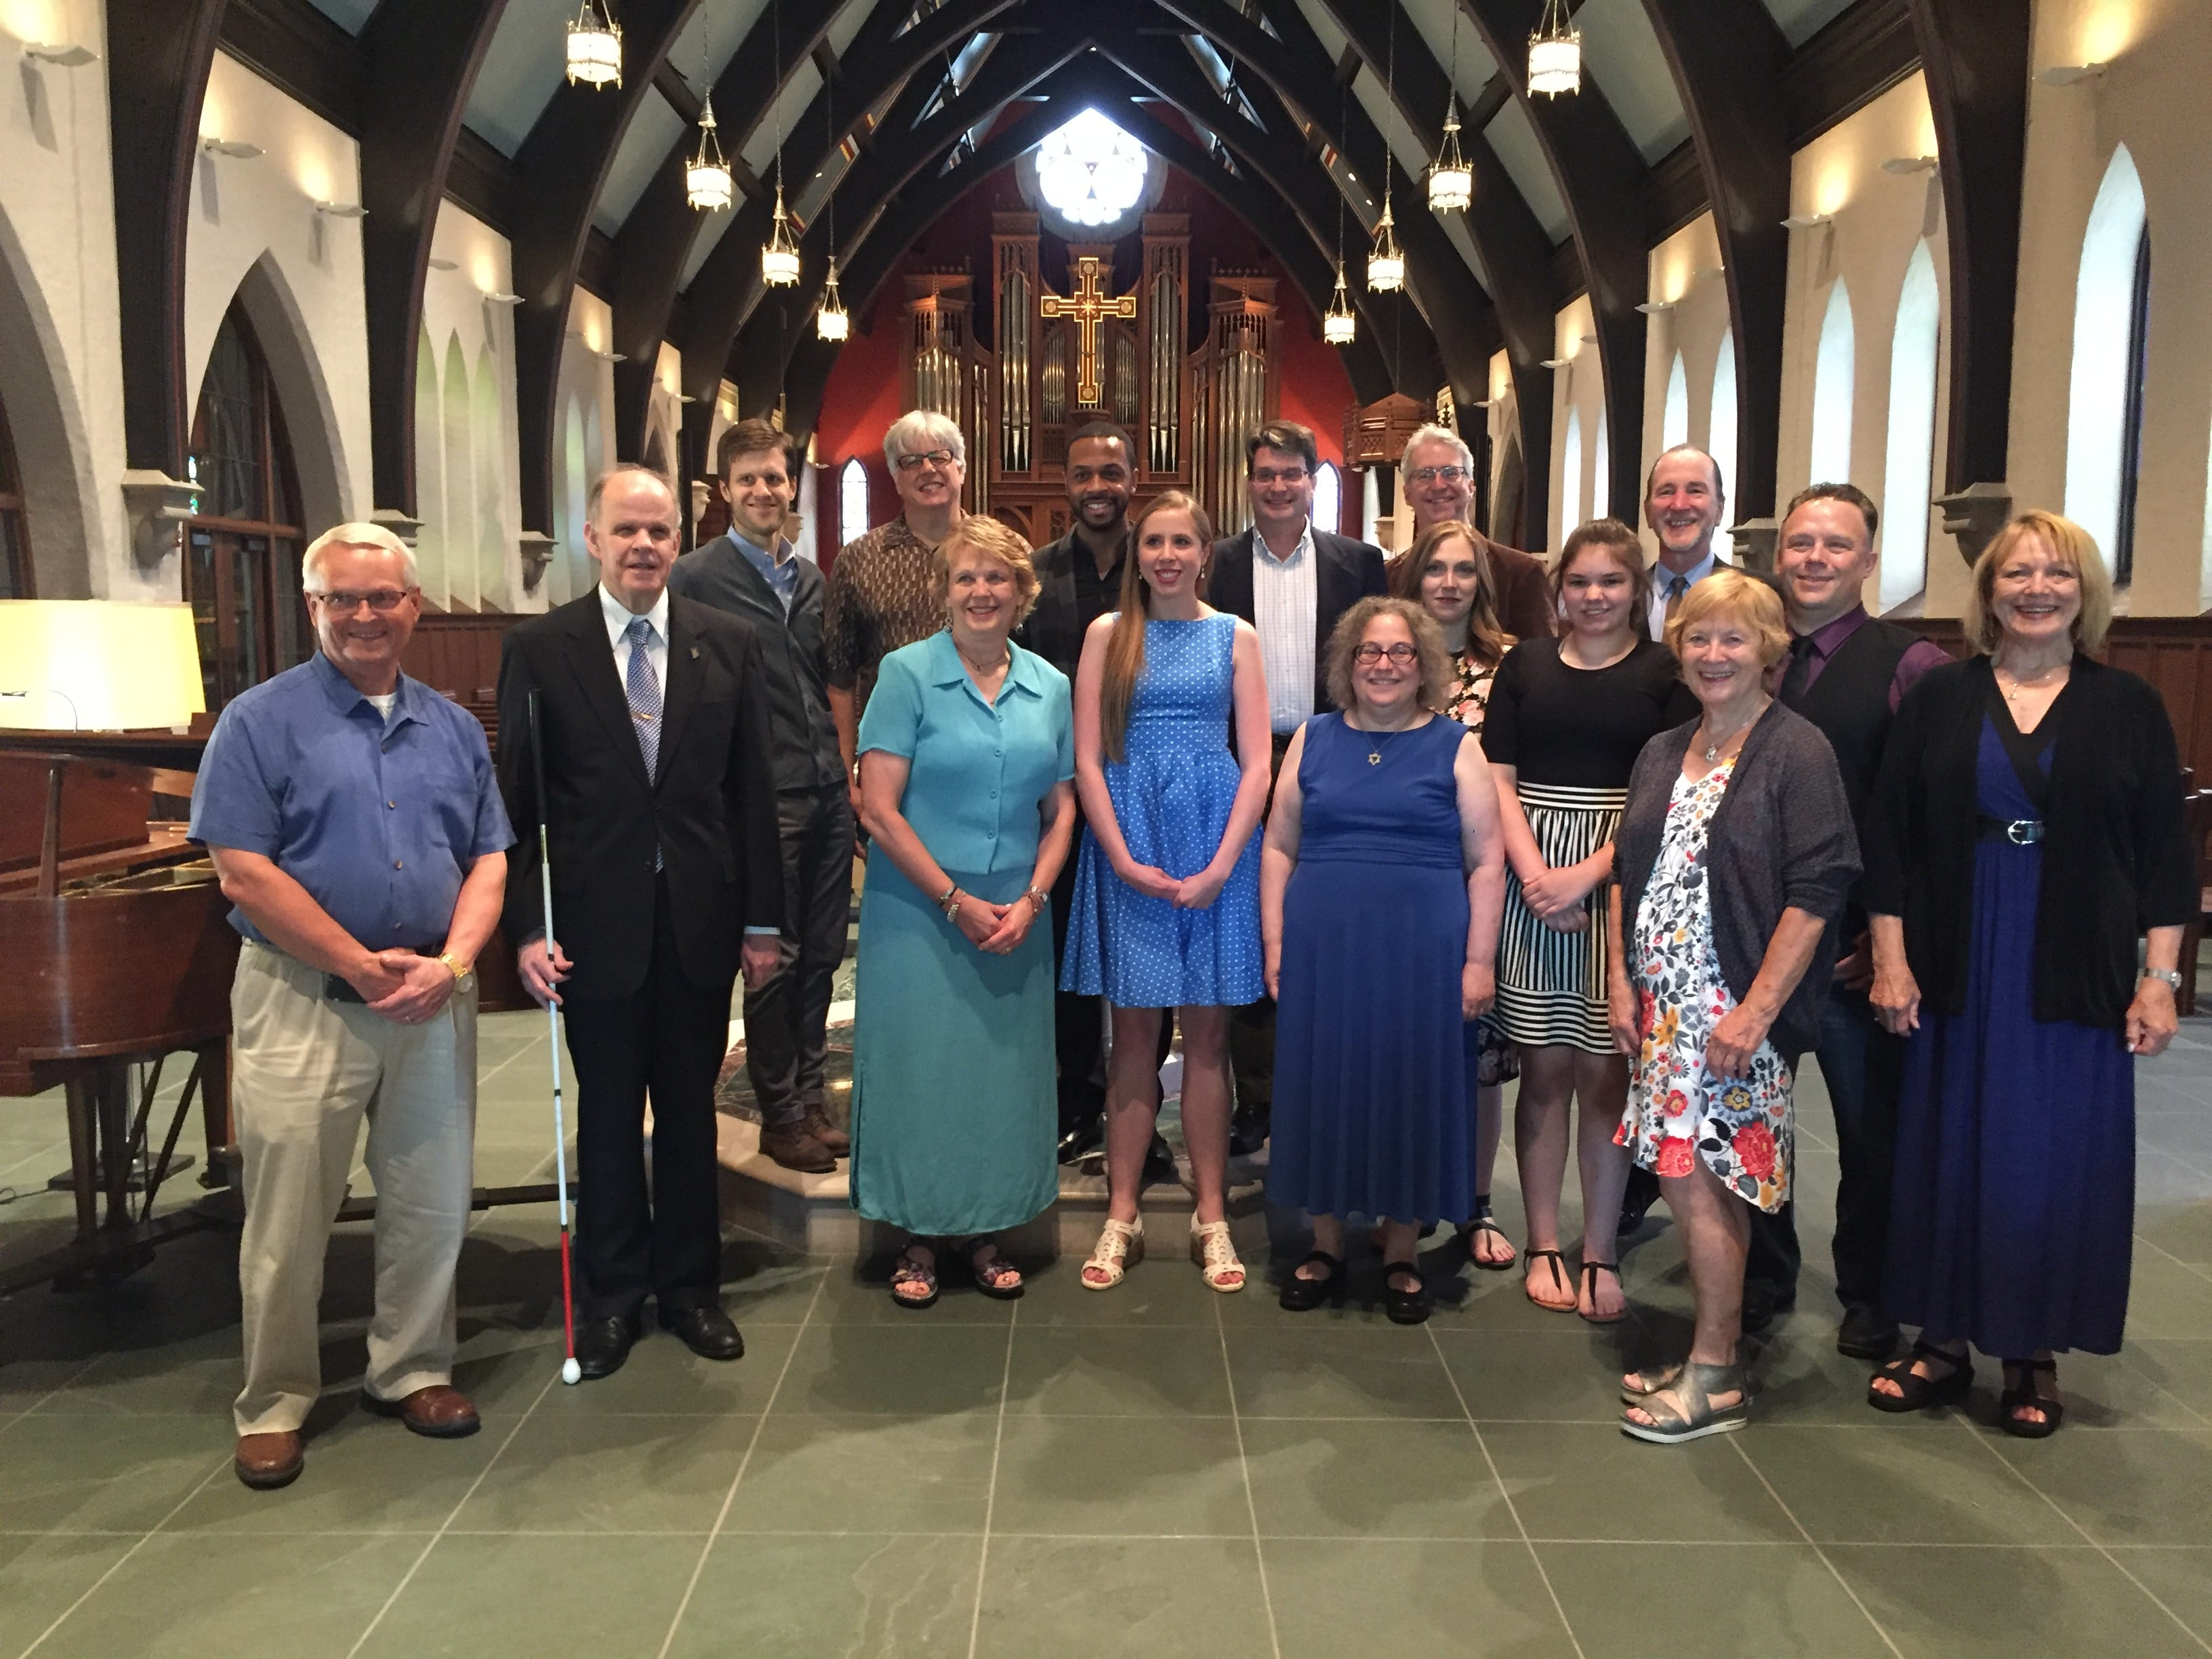 Spring Studio Recital at St. Paul's Episcopal Church 2018 and Party at the Indy Home Studio